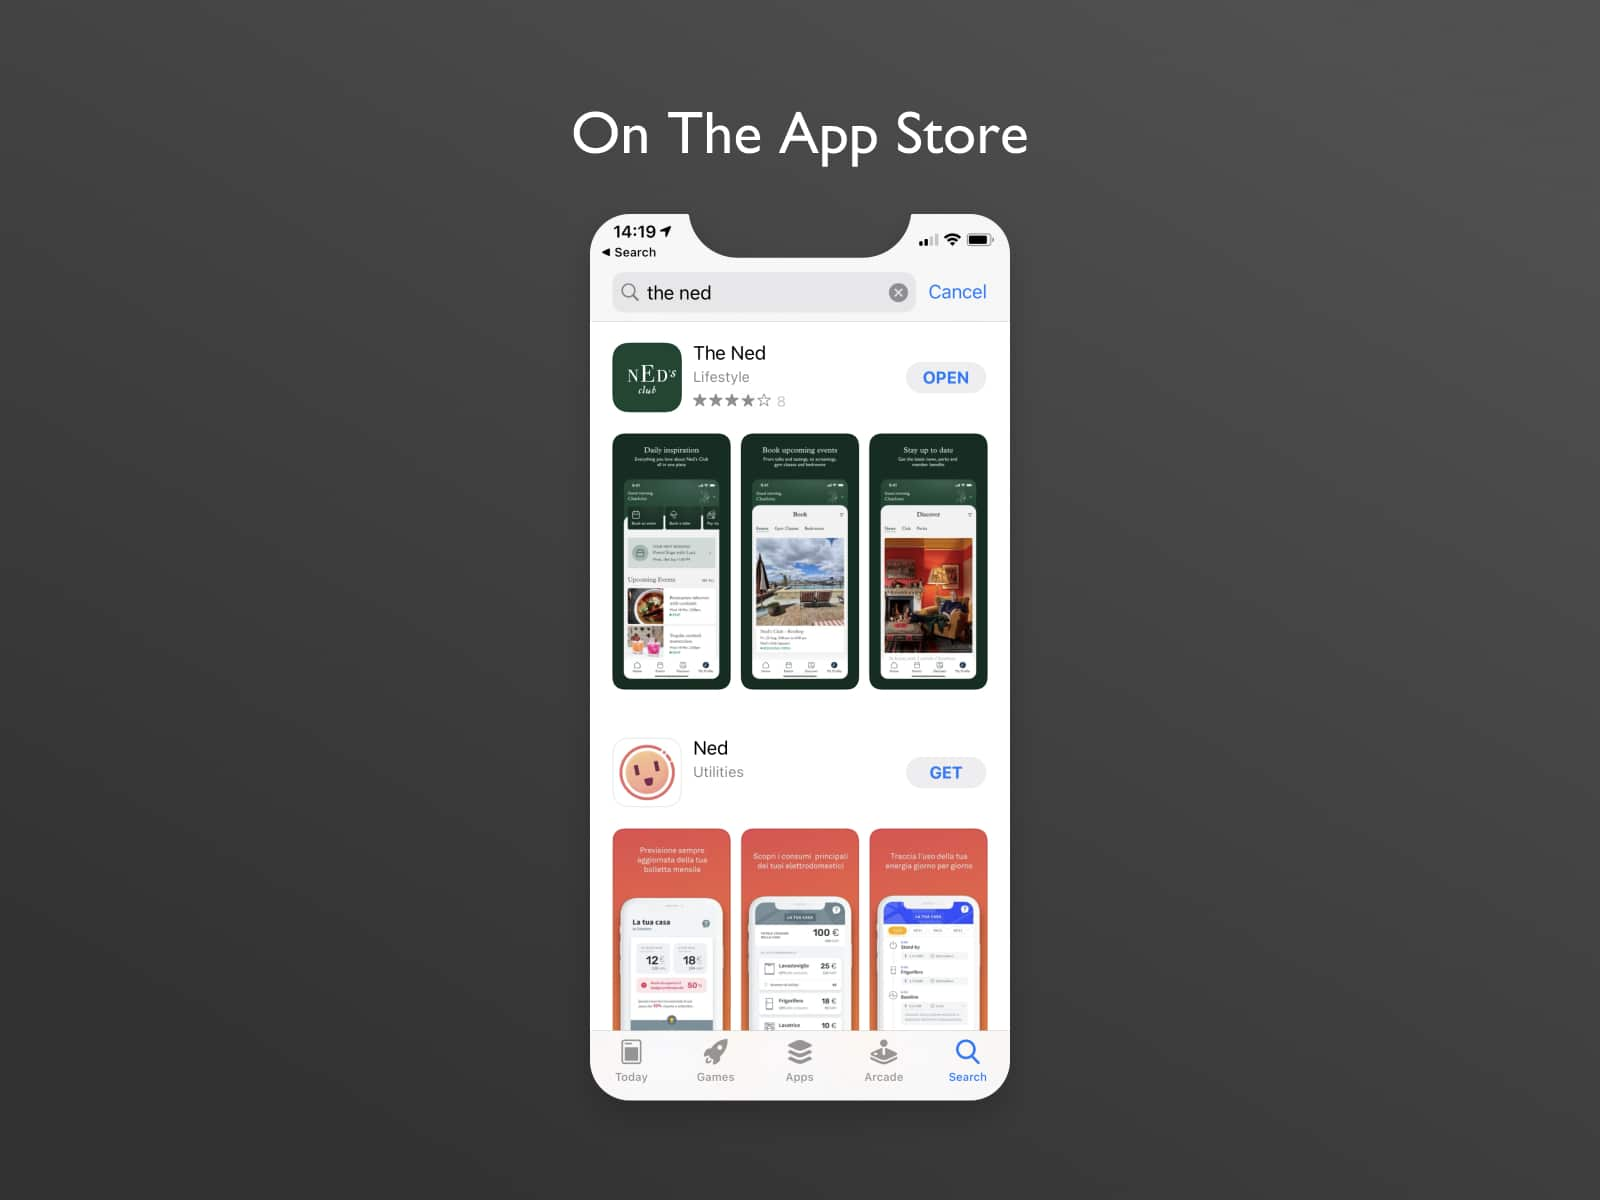 the ned app store